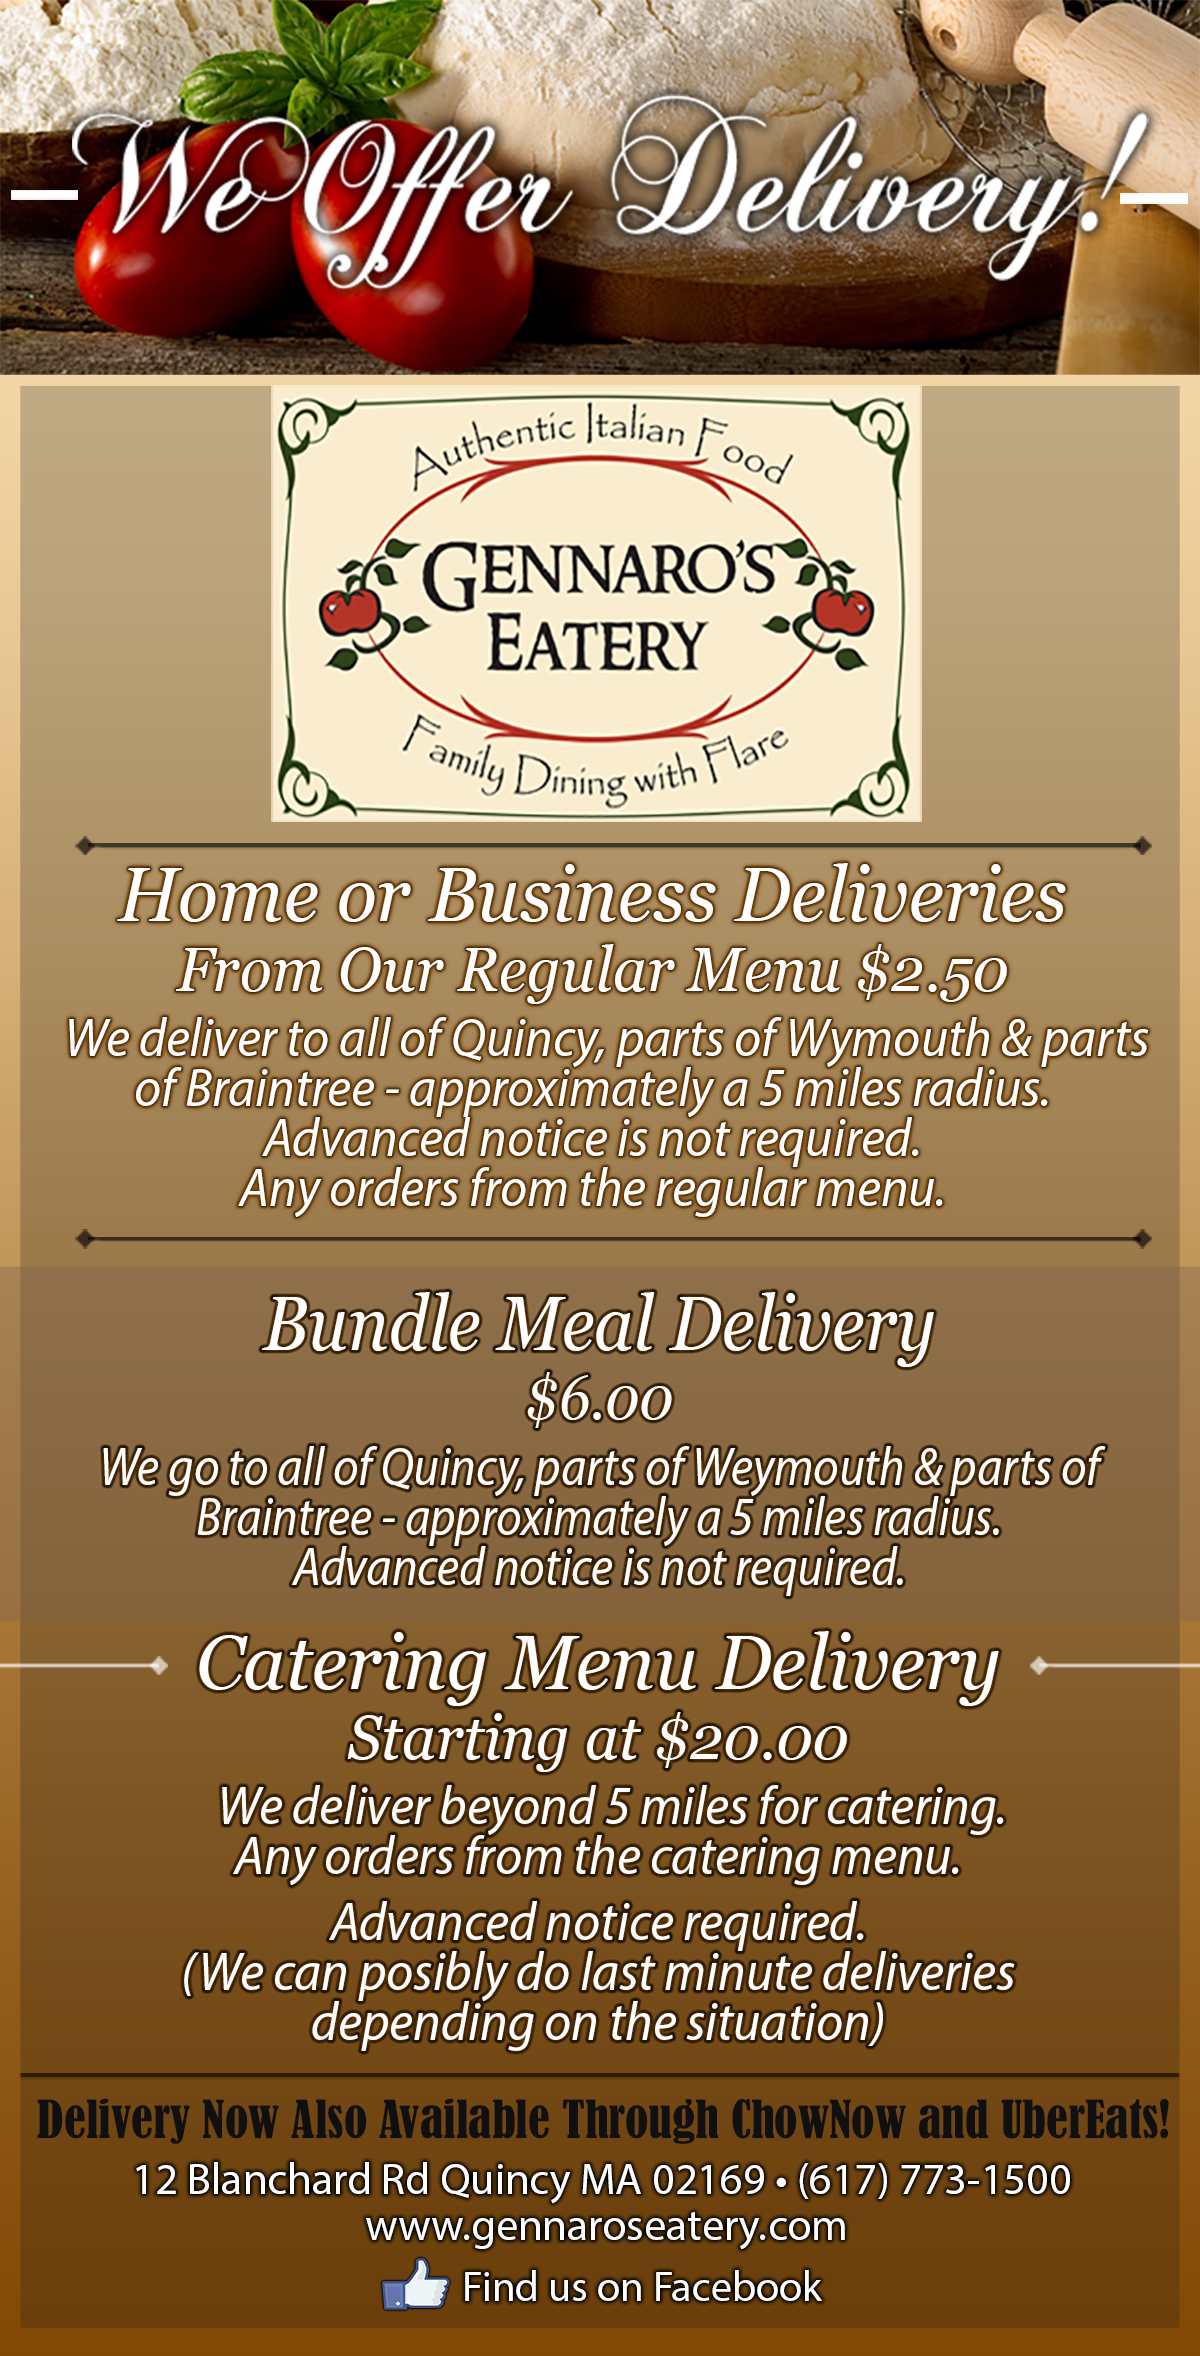 Home or Business Deliveries:From Our Regular Menu $2.50. We deliver to all of Quincy, parts of Weymouth & parts of Braintree - approximately a 5 miles radius. Advanced notice is not required. Any orders from the regular menu. Bundle Meal Delivery $6.00. We go to all of Quincy, parts of Weymouth & parts of Braintree - approximately a 5 miles radius. Advanced notice is not required. Catering Menu Delivery, Starting at $20.00. We deliver beyond 5 miles for catering. Any orders from the catering menu. Advanced notice required. (We can possibly do last minute deliveries depending on the situation).